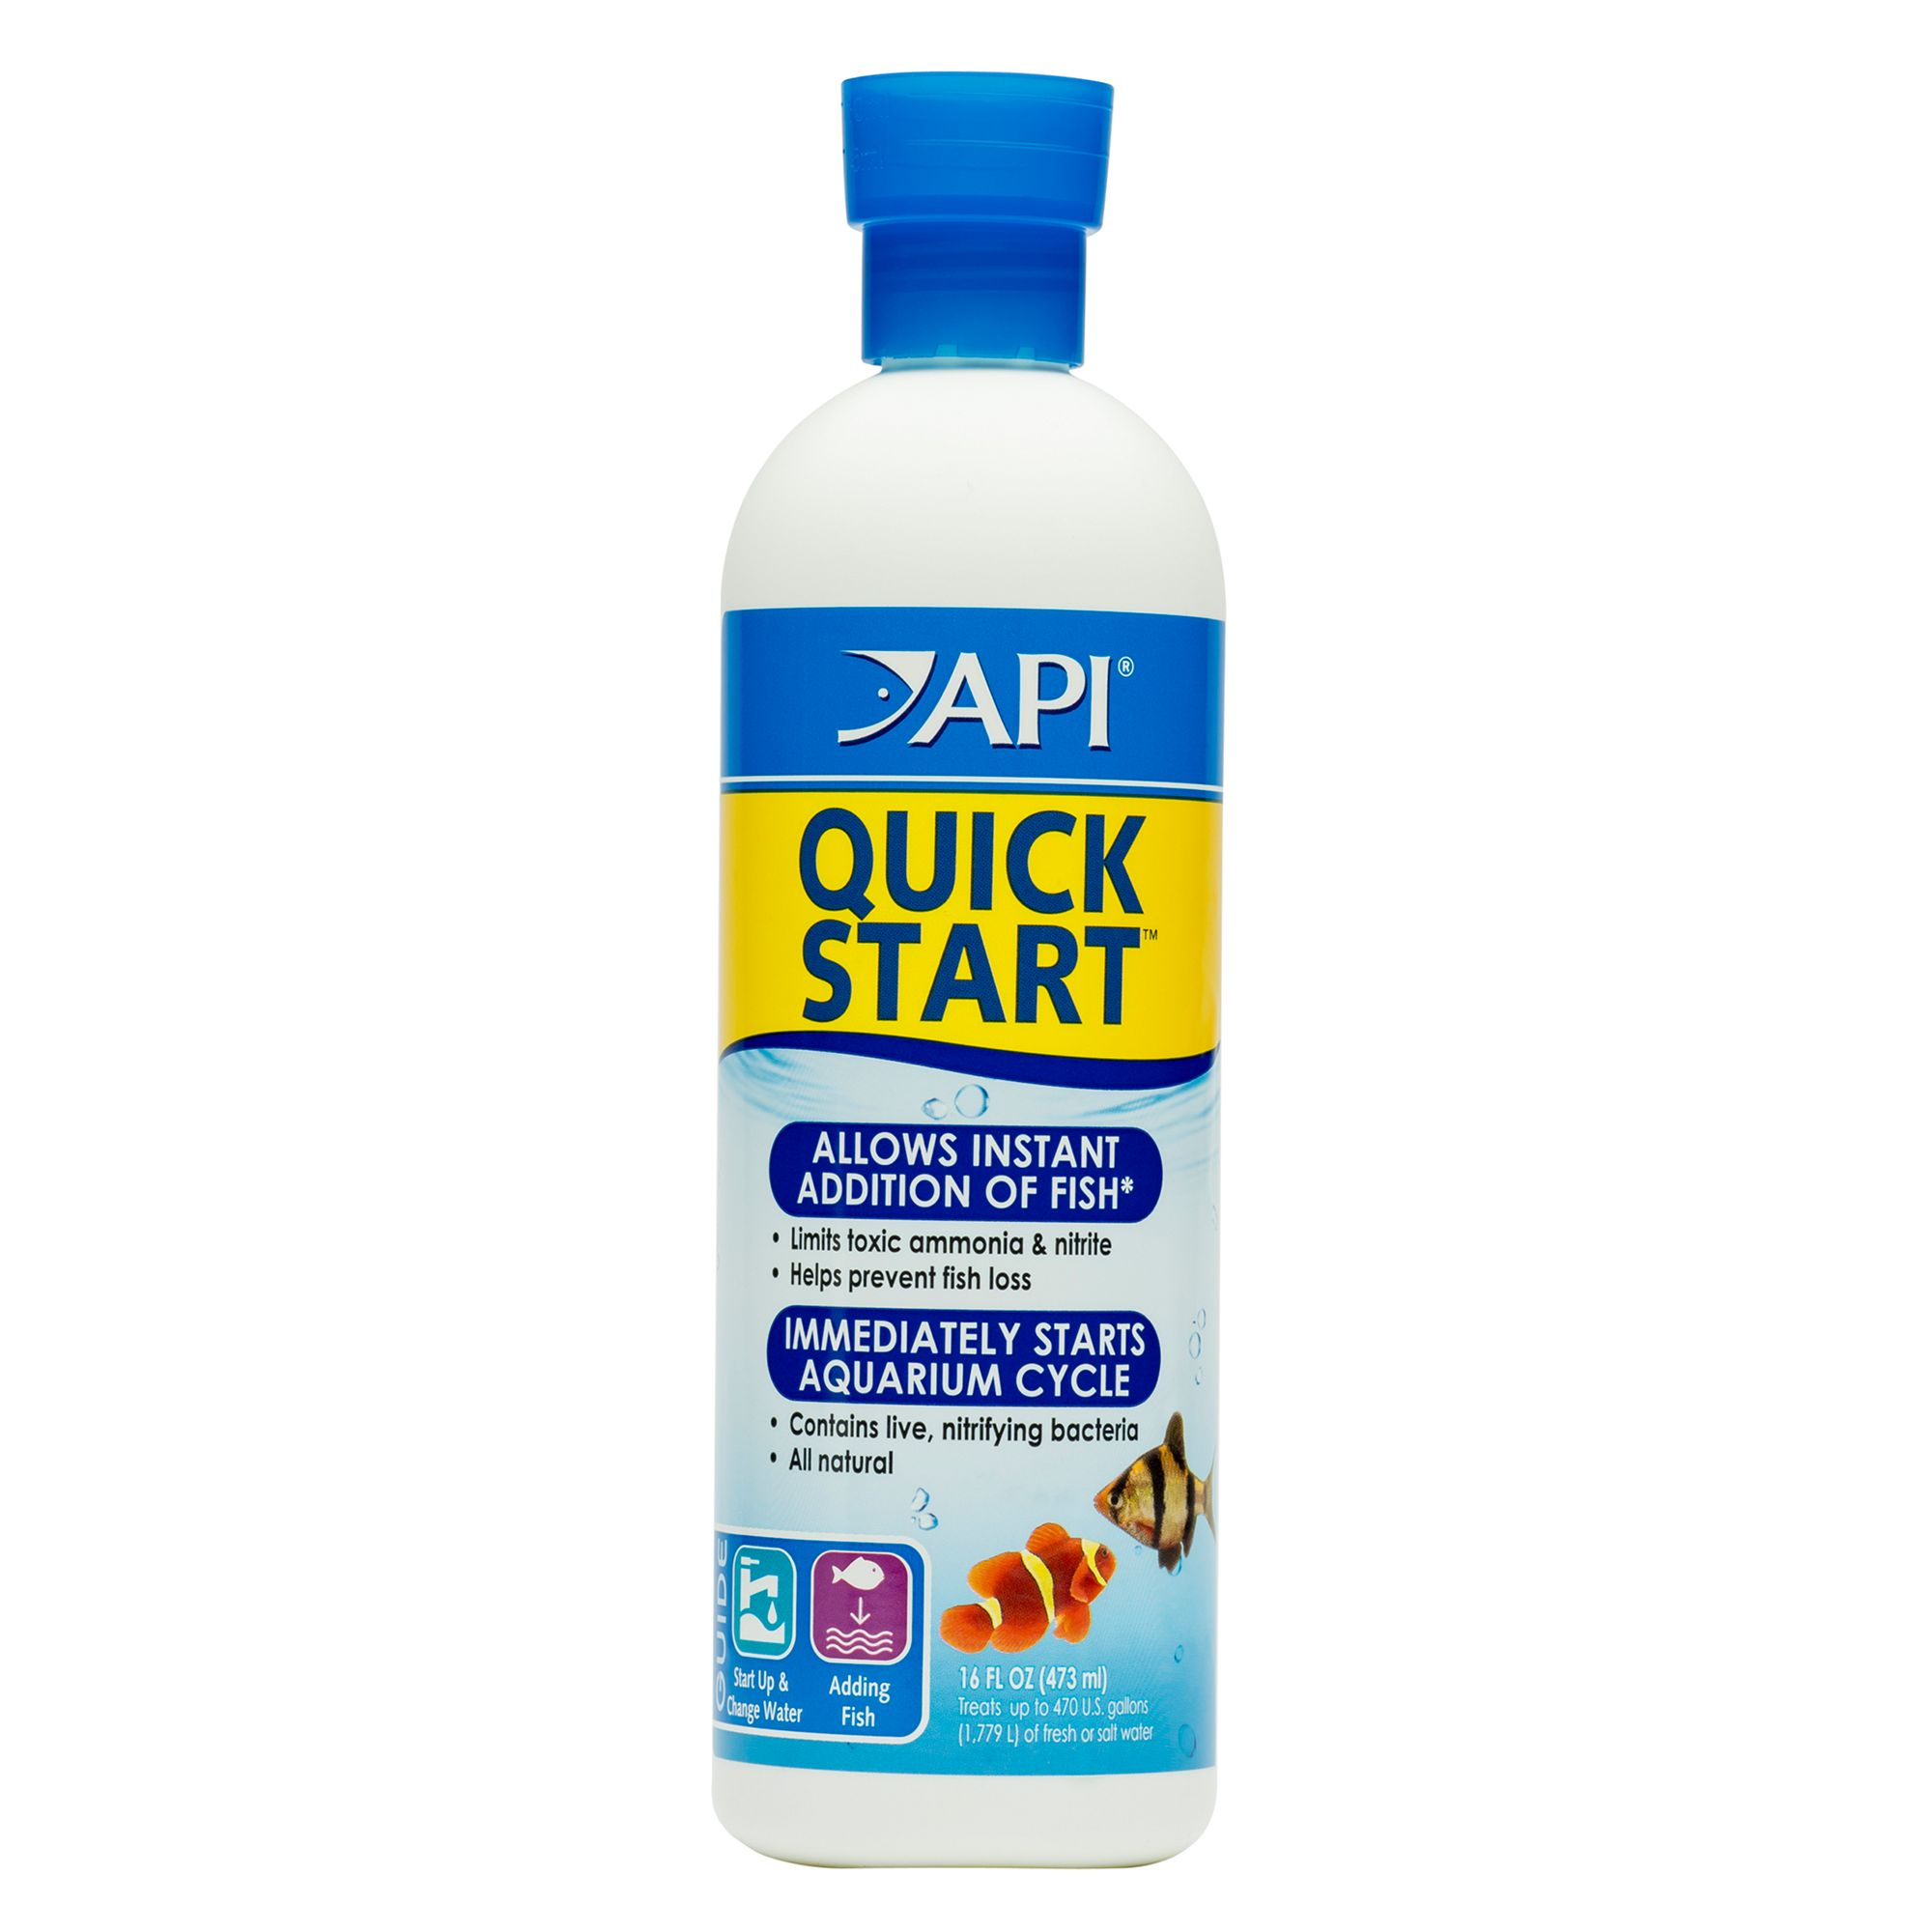 Api Quick Start Aquarium Cycling Water Conditioner size: 16 Fl Oz